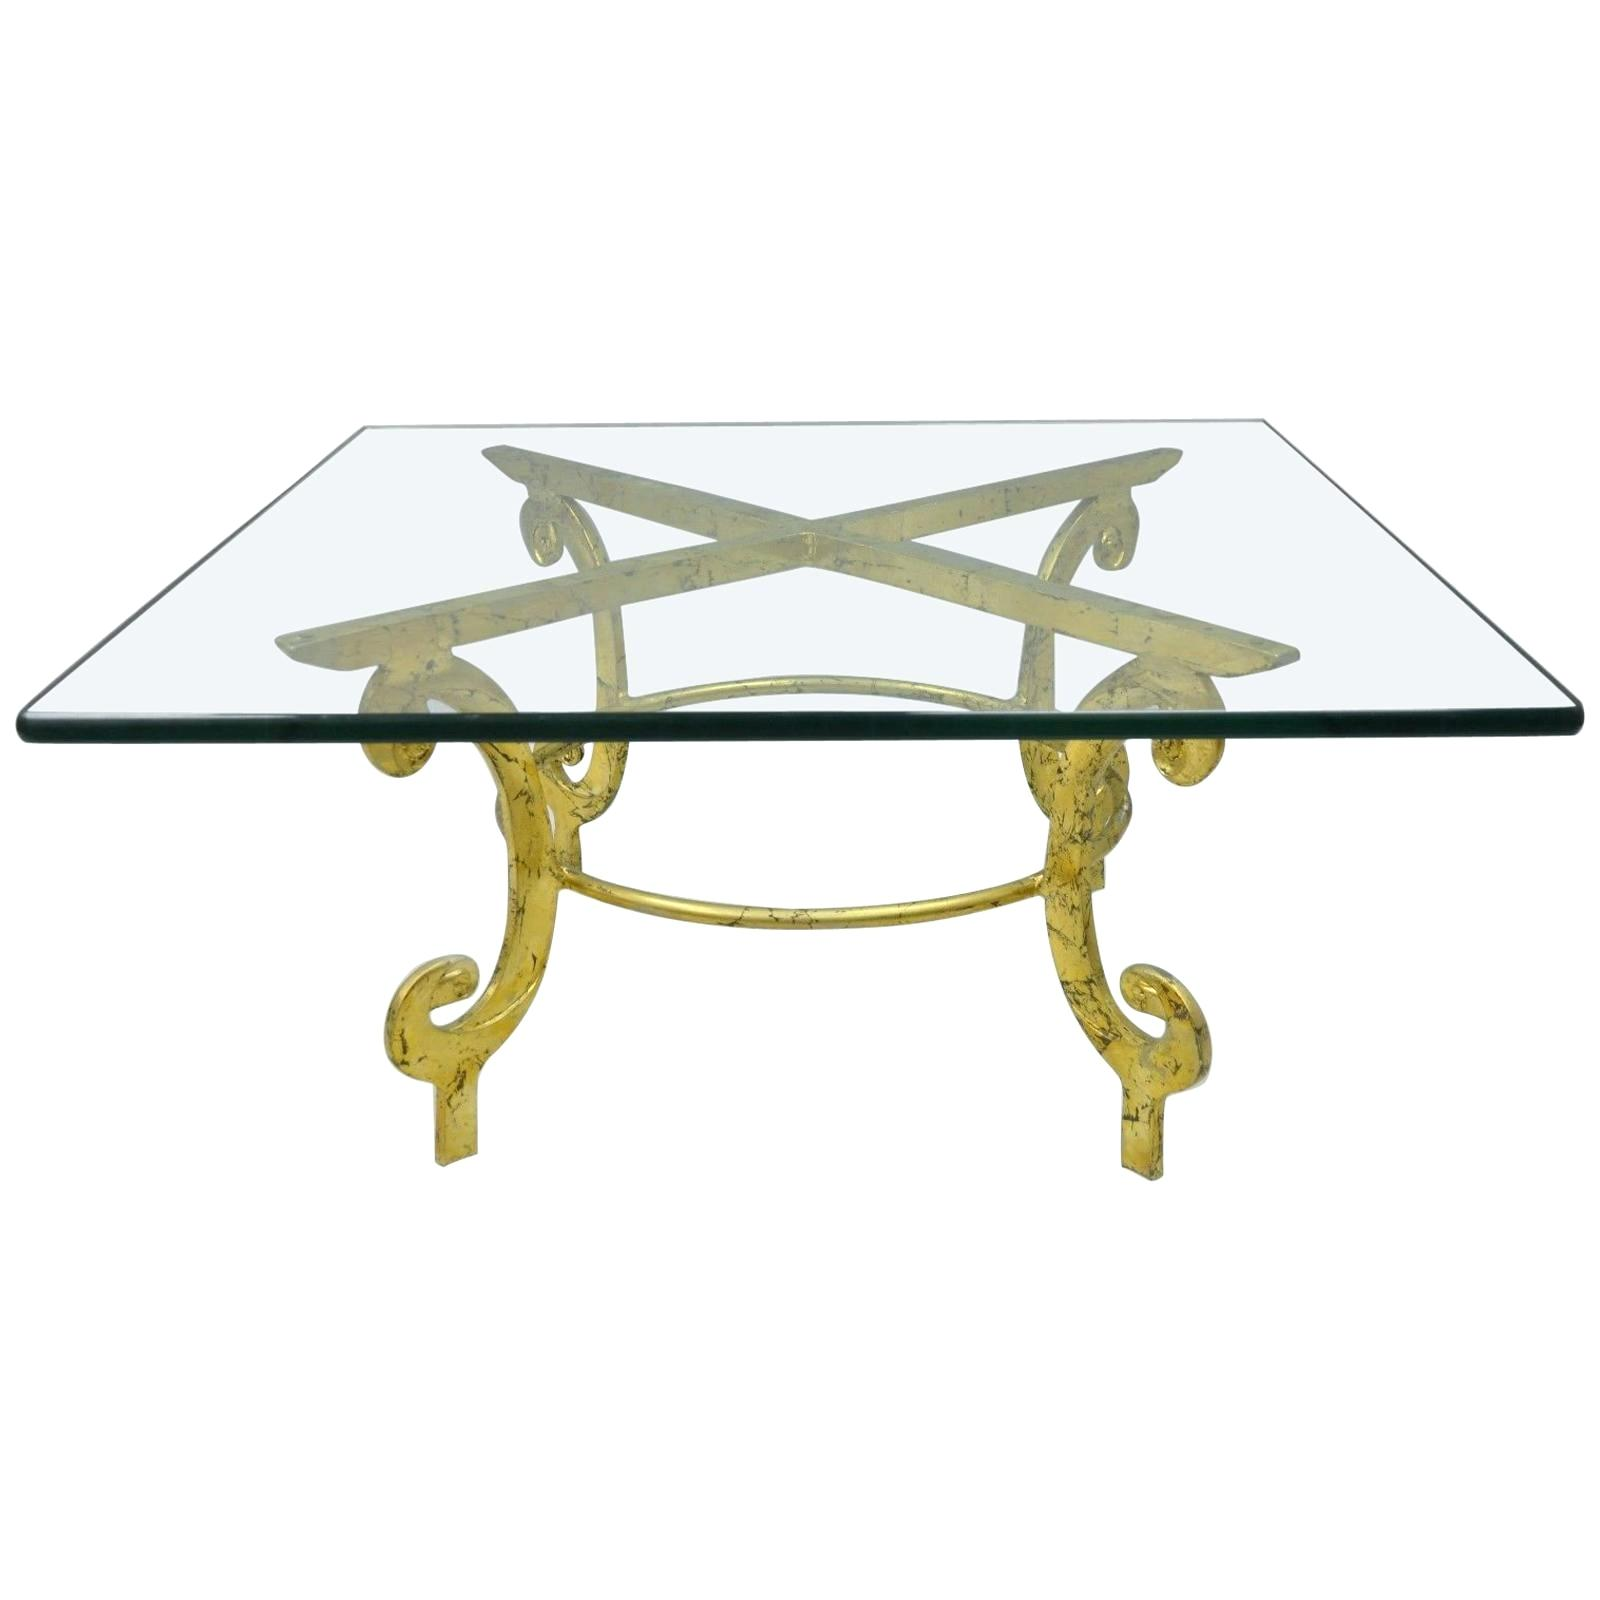 gold metal end table accent tables set rose vintage and glass regency scrolling coffee legs hammered kitchen island trolley patio tile with umbrella hole living room shelves fruit